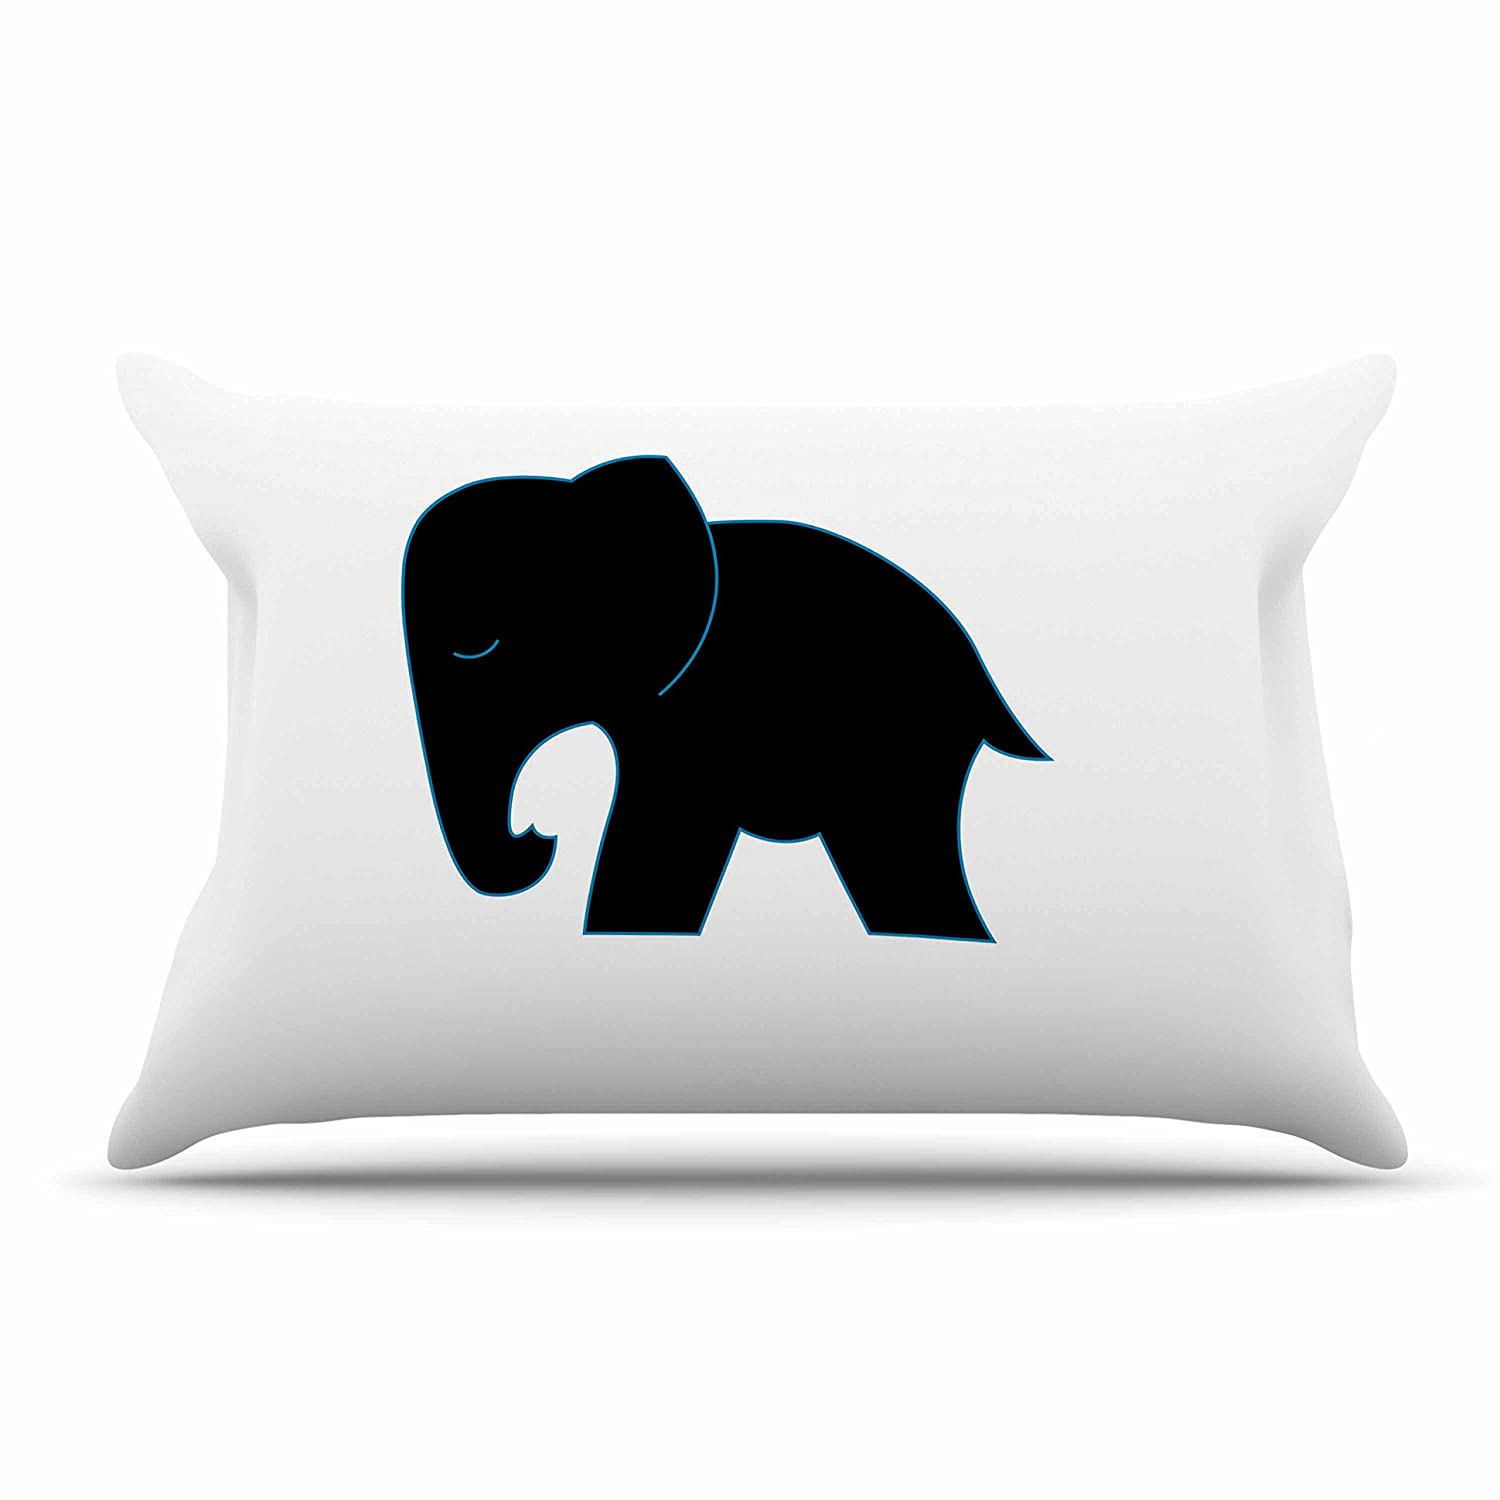 Kess InHouse NL Designs Cute Black Elephant Black Animals Standard Pillow Case, 30 by 20-Inch, 30' X 20'